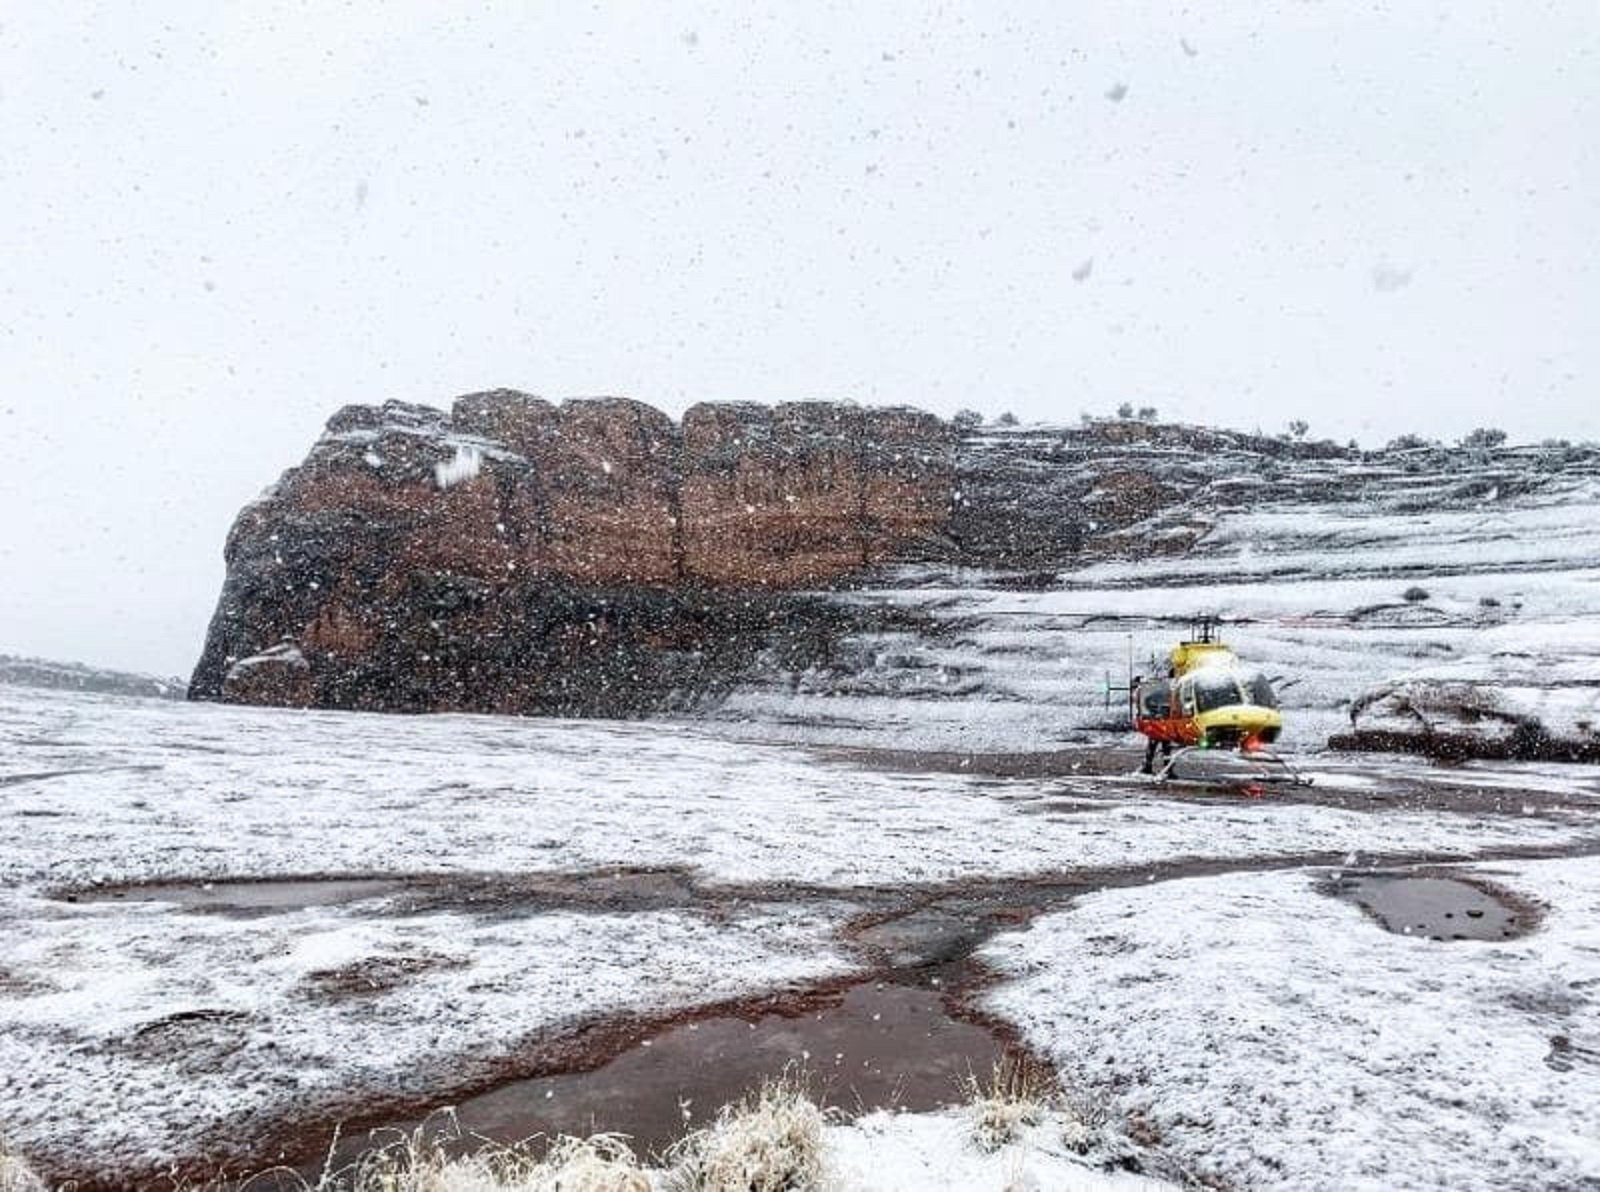 A rescue aircraft is seen after two people were killed and another was injured in a fall near Delicate Arch in Utah's Arches National Park on Nov. 29, 2019. (Credit: Utah Bureau Of Land Management via CNN)